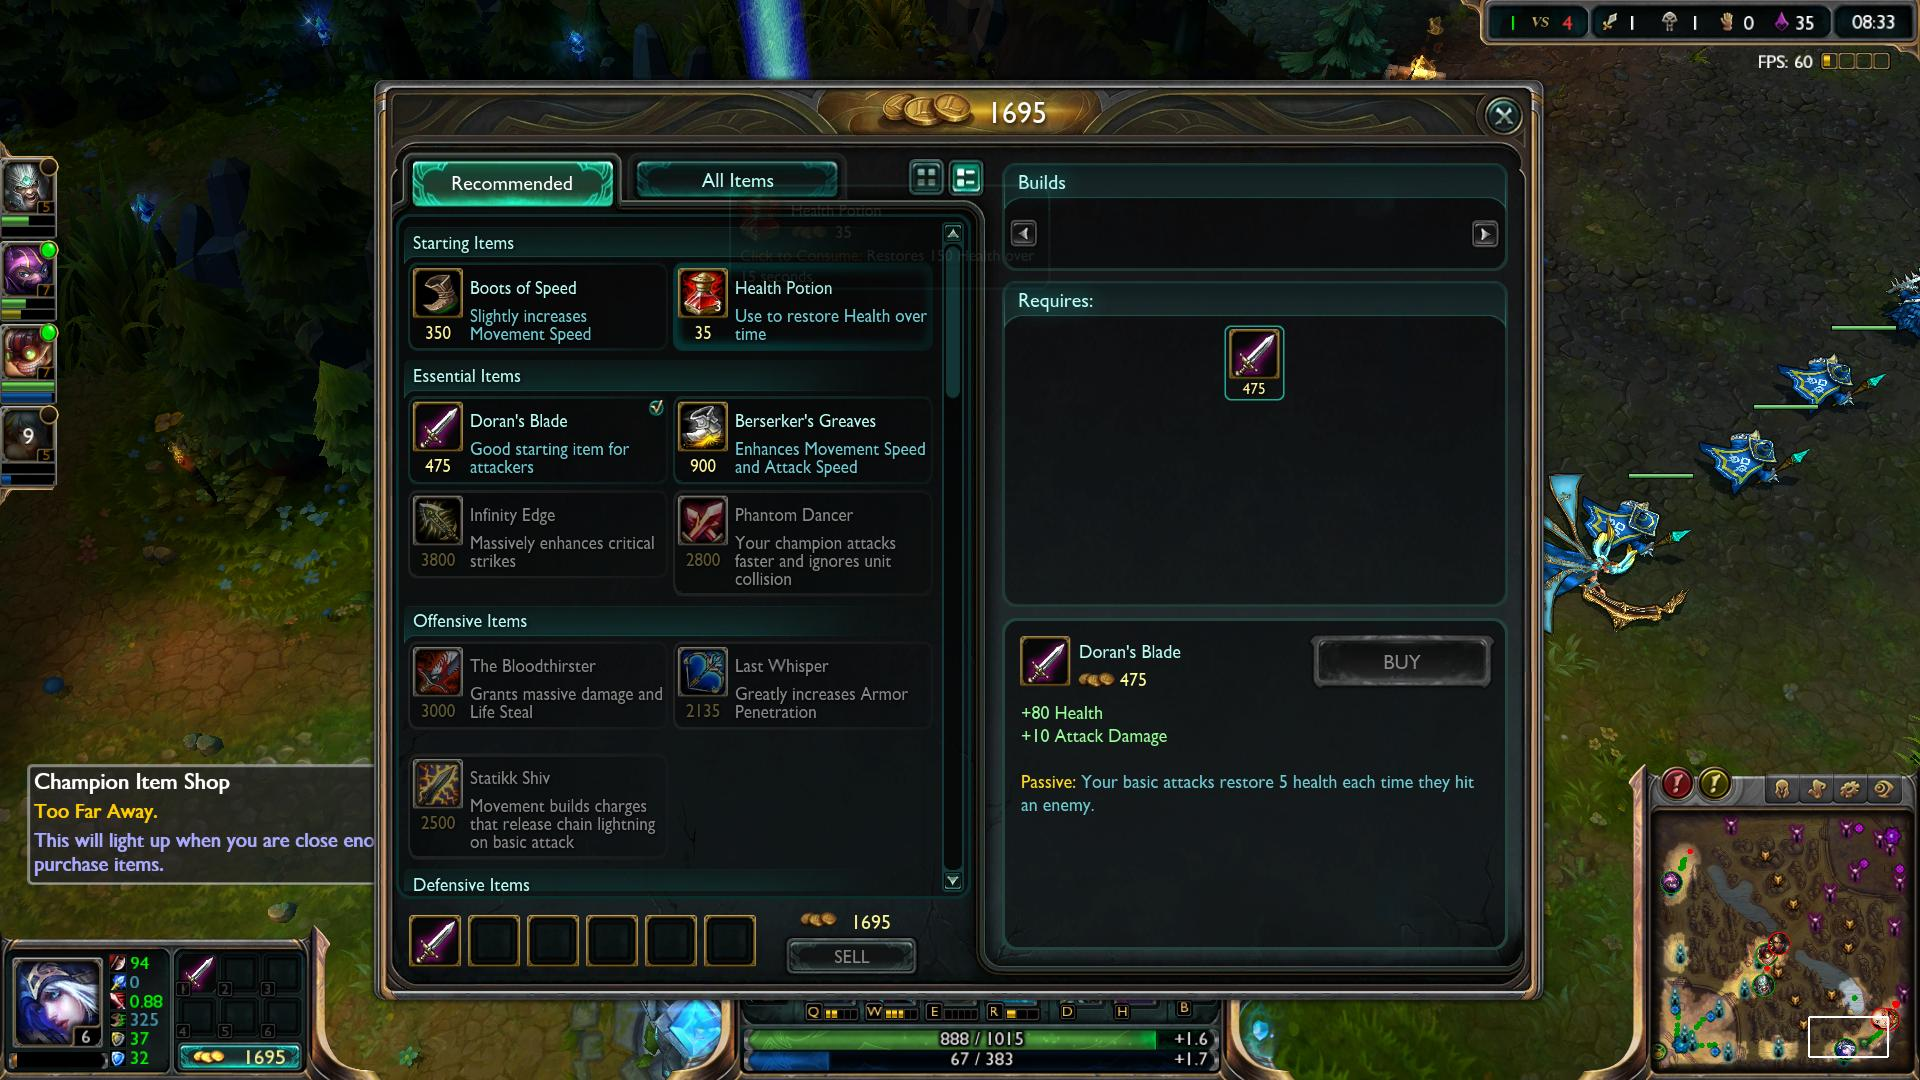 Doran's Blade Ashe lol lol screenshot